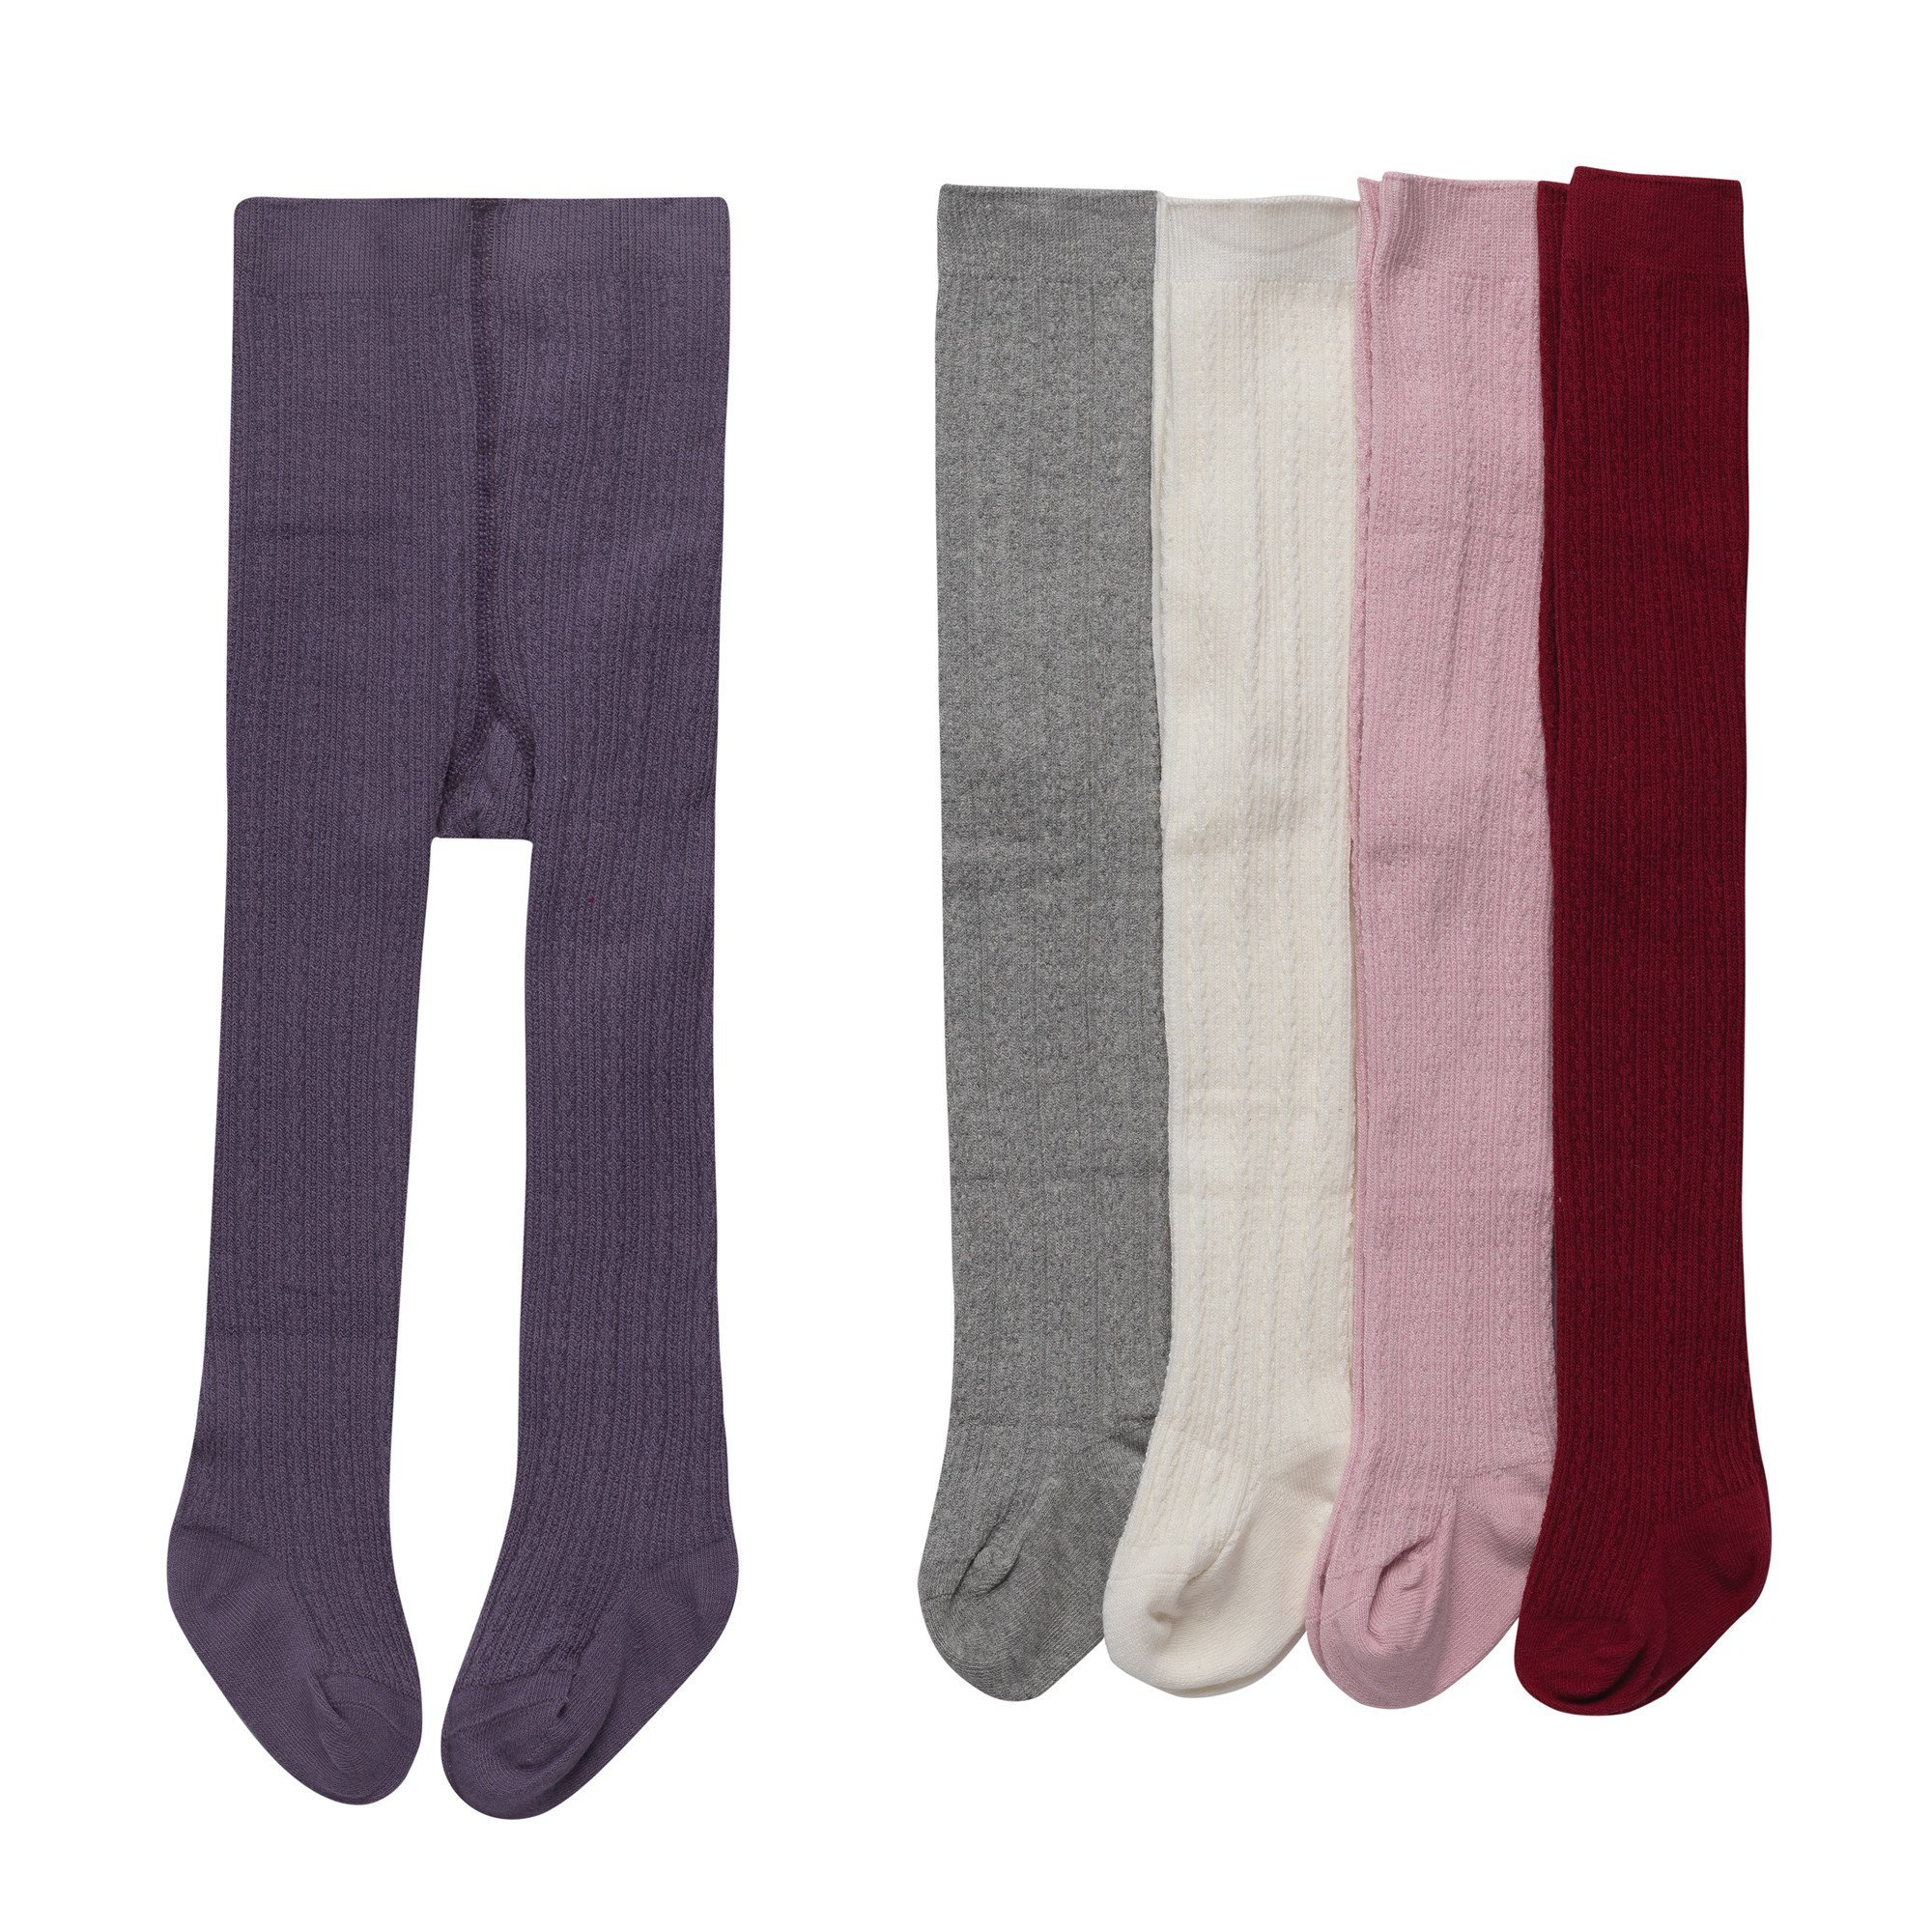 Alva Edison Cable-Knit Tights For Baby Girls,Toddlers&Child,For 5 pairs,6-12M by Alva Edison